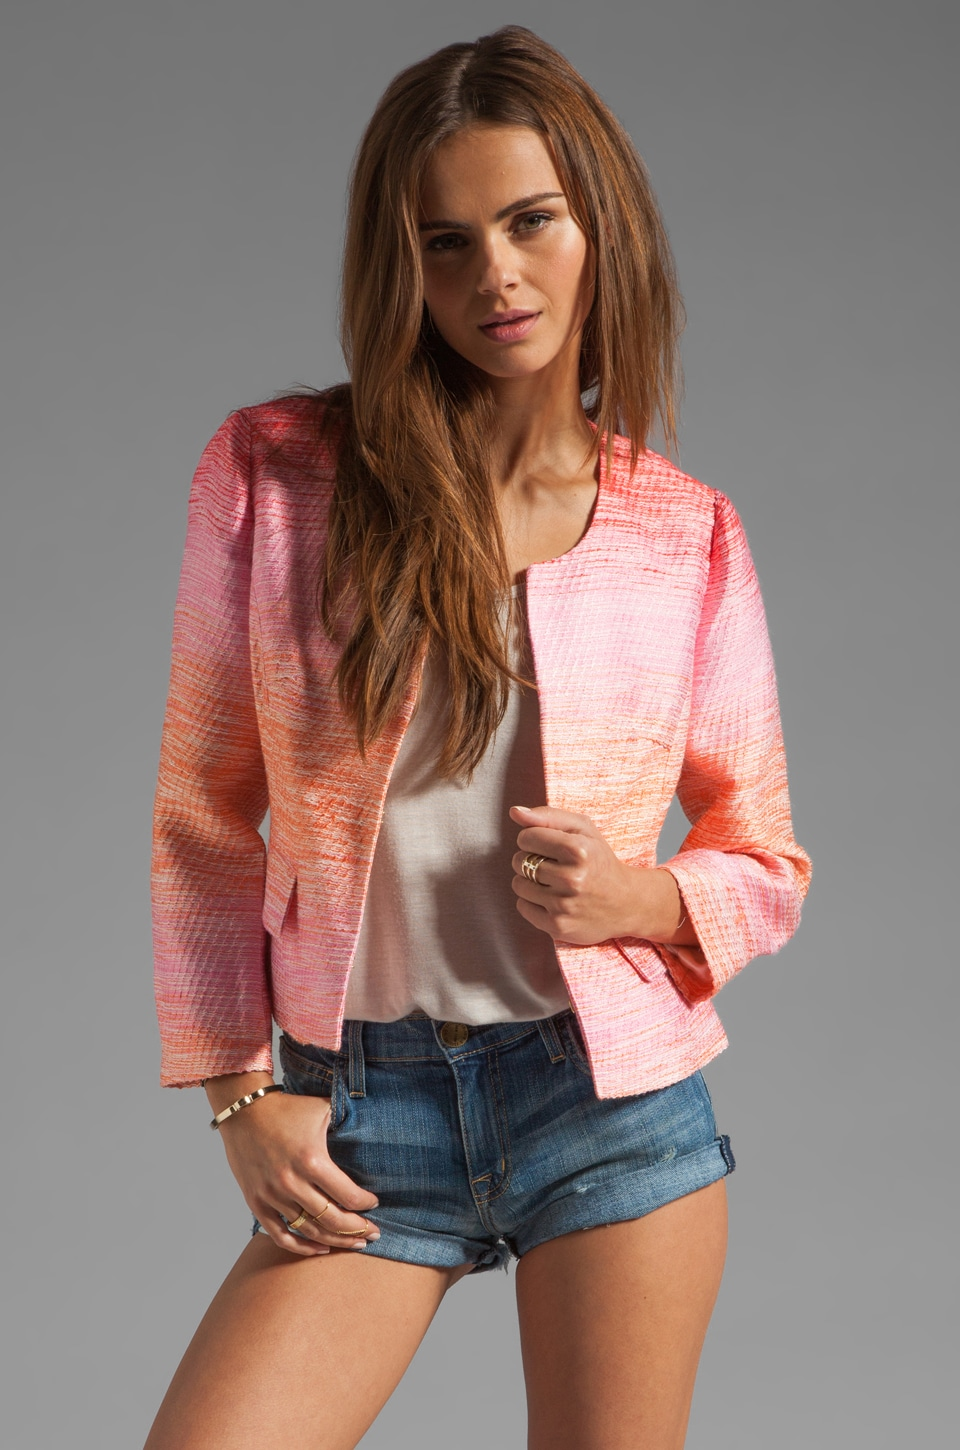 Shoshanna Norabel Jacket in Peach Multi